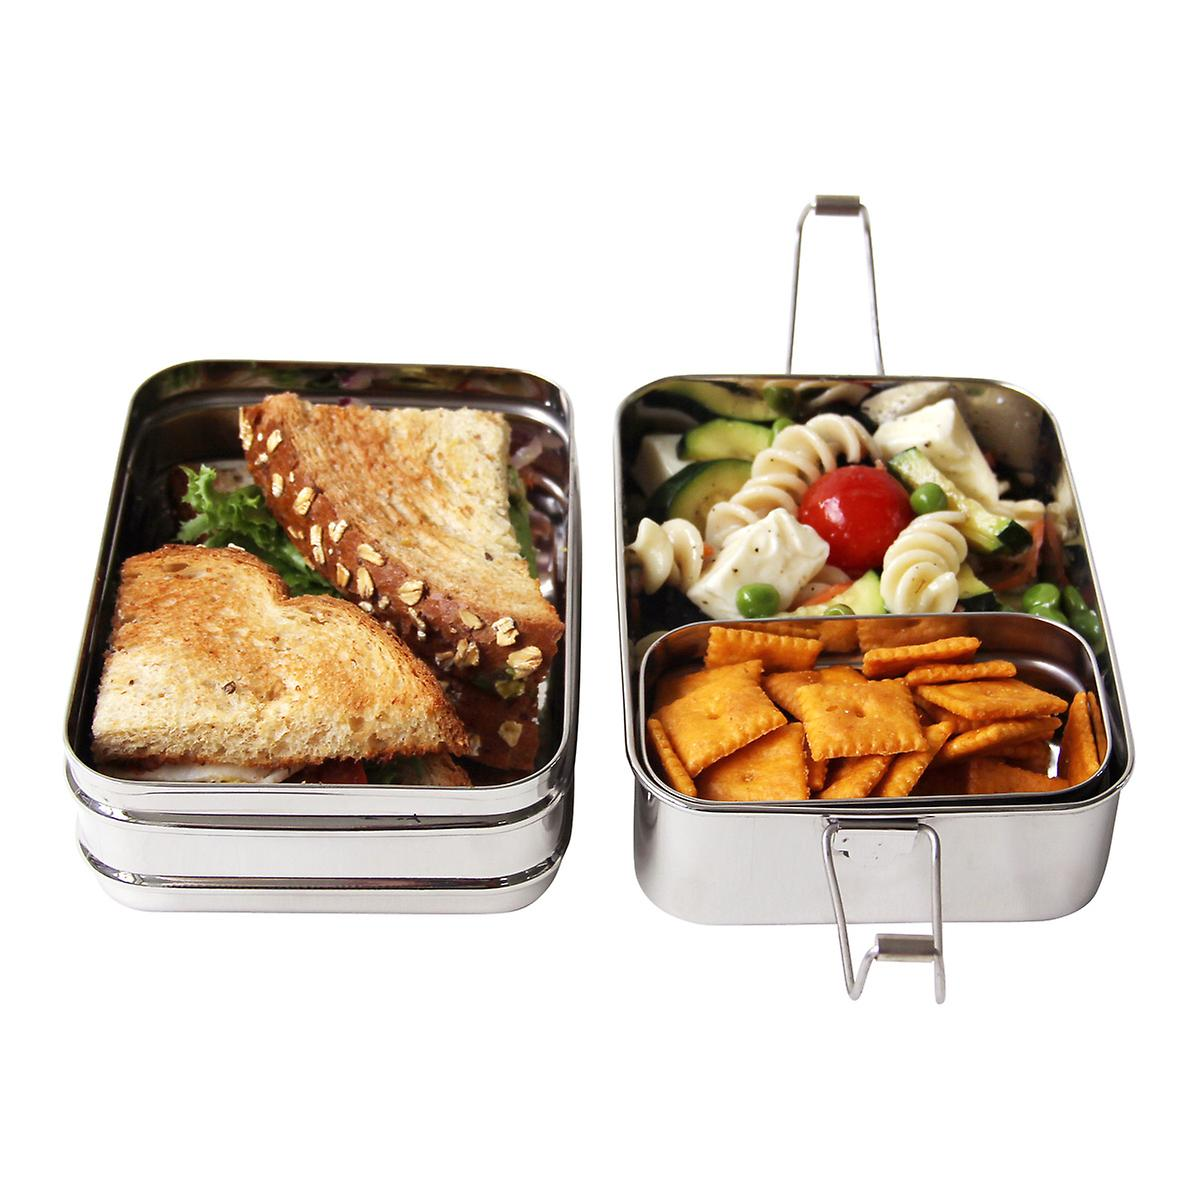 bento lunch box jakarta ecolunchbox stainless steel rectangular 3 in 1 lunch box bento box at. Black Bedroom Furniture Sets. Home Design Ideas